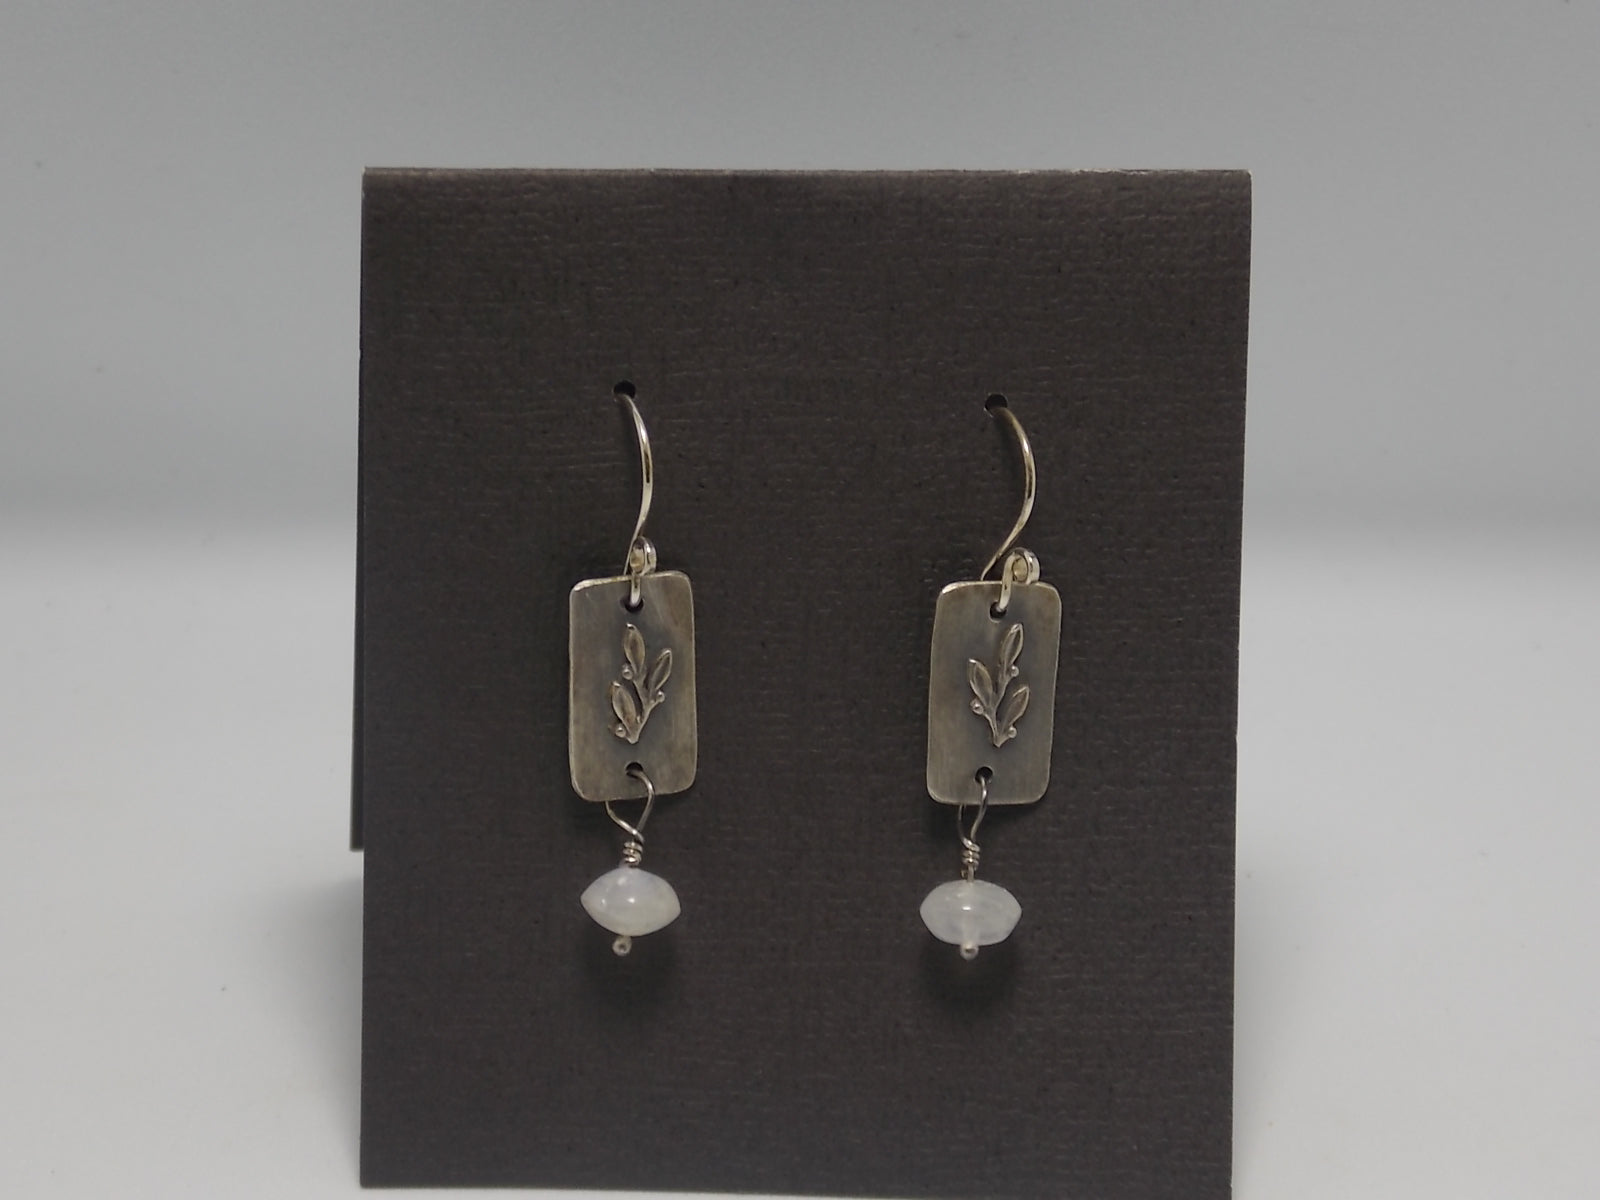 Laurel leaf earrings with moonstone by Rebecca Wheat